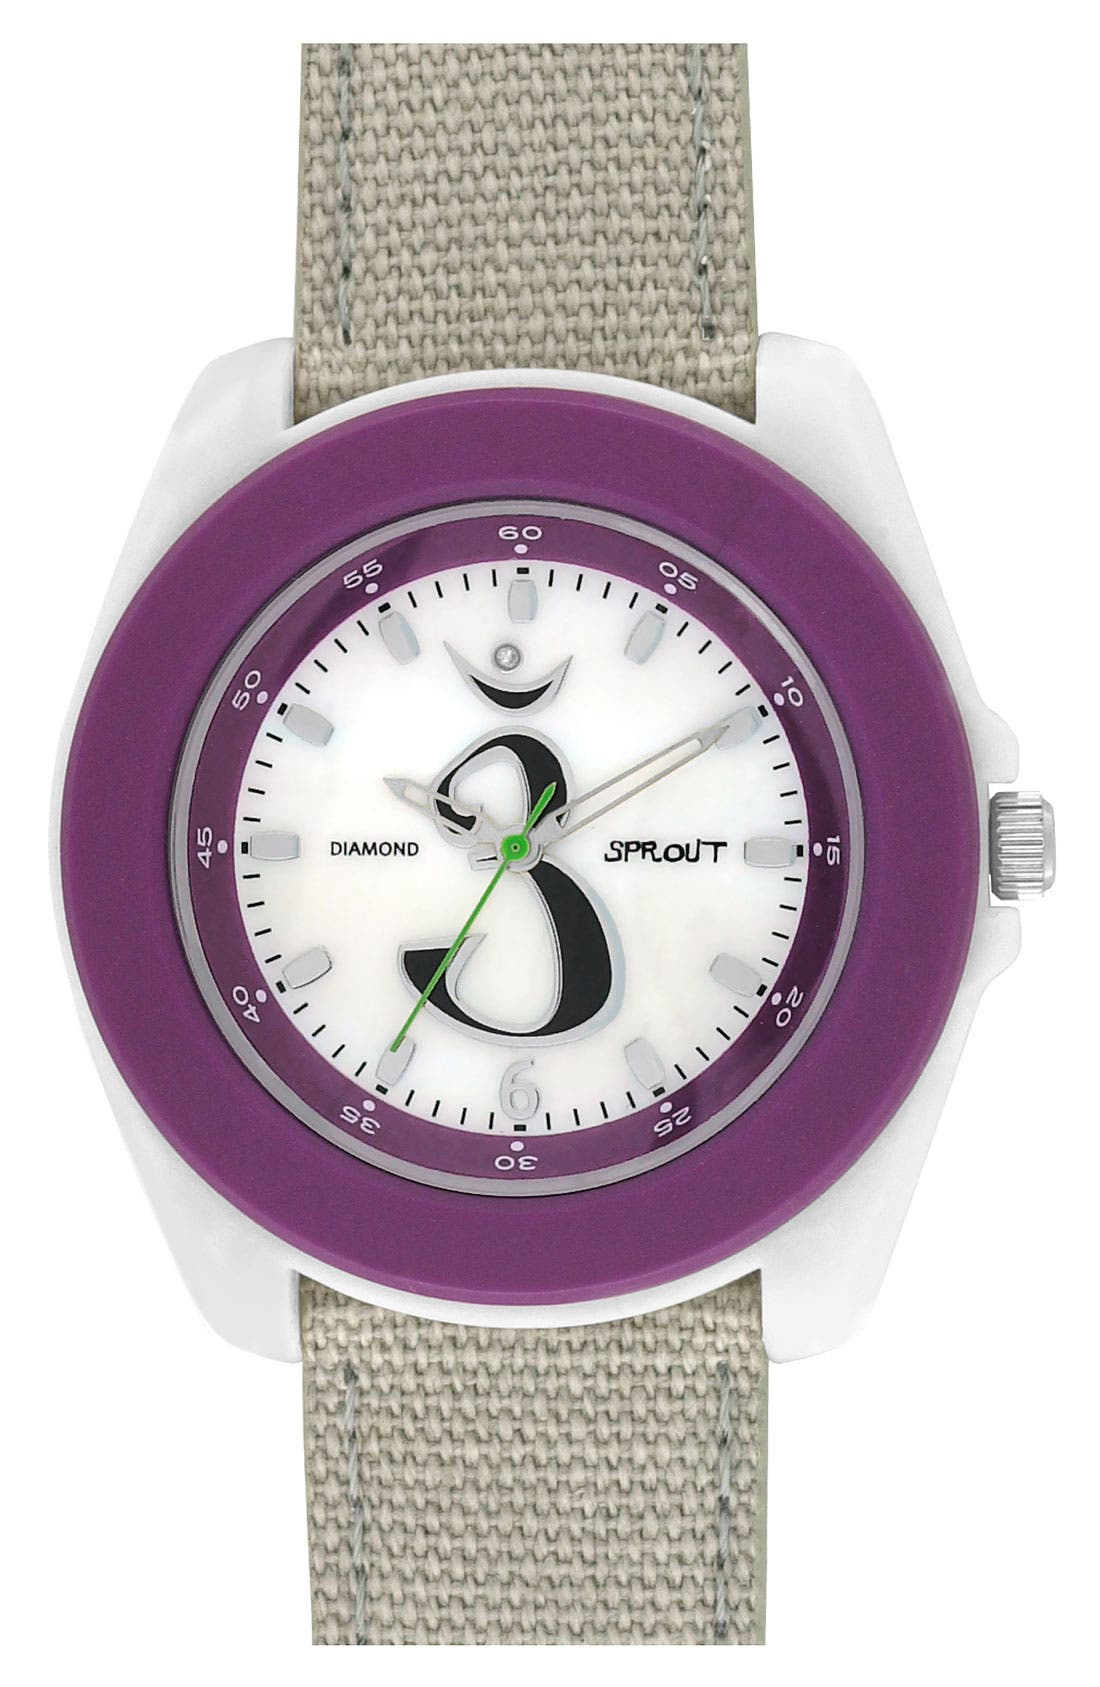 Main Image - SPROUT™ Watches 'Chakra' Diamond Organic Strap Watch, 44mm